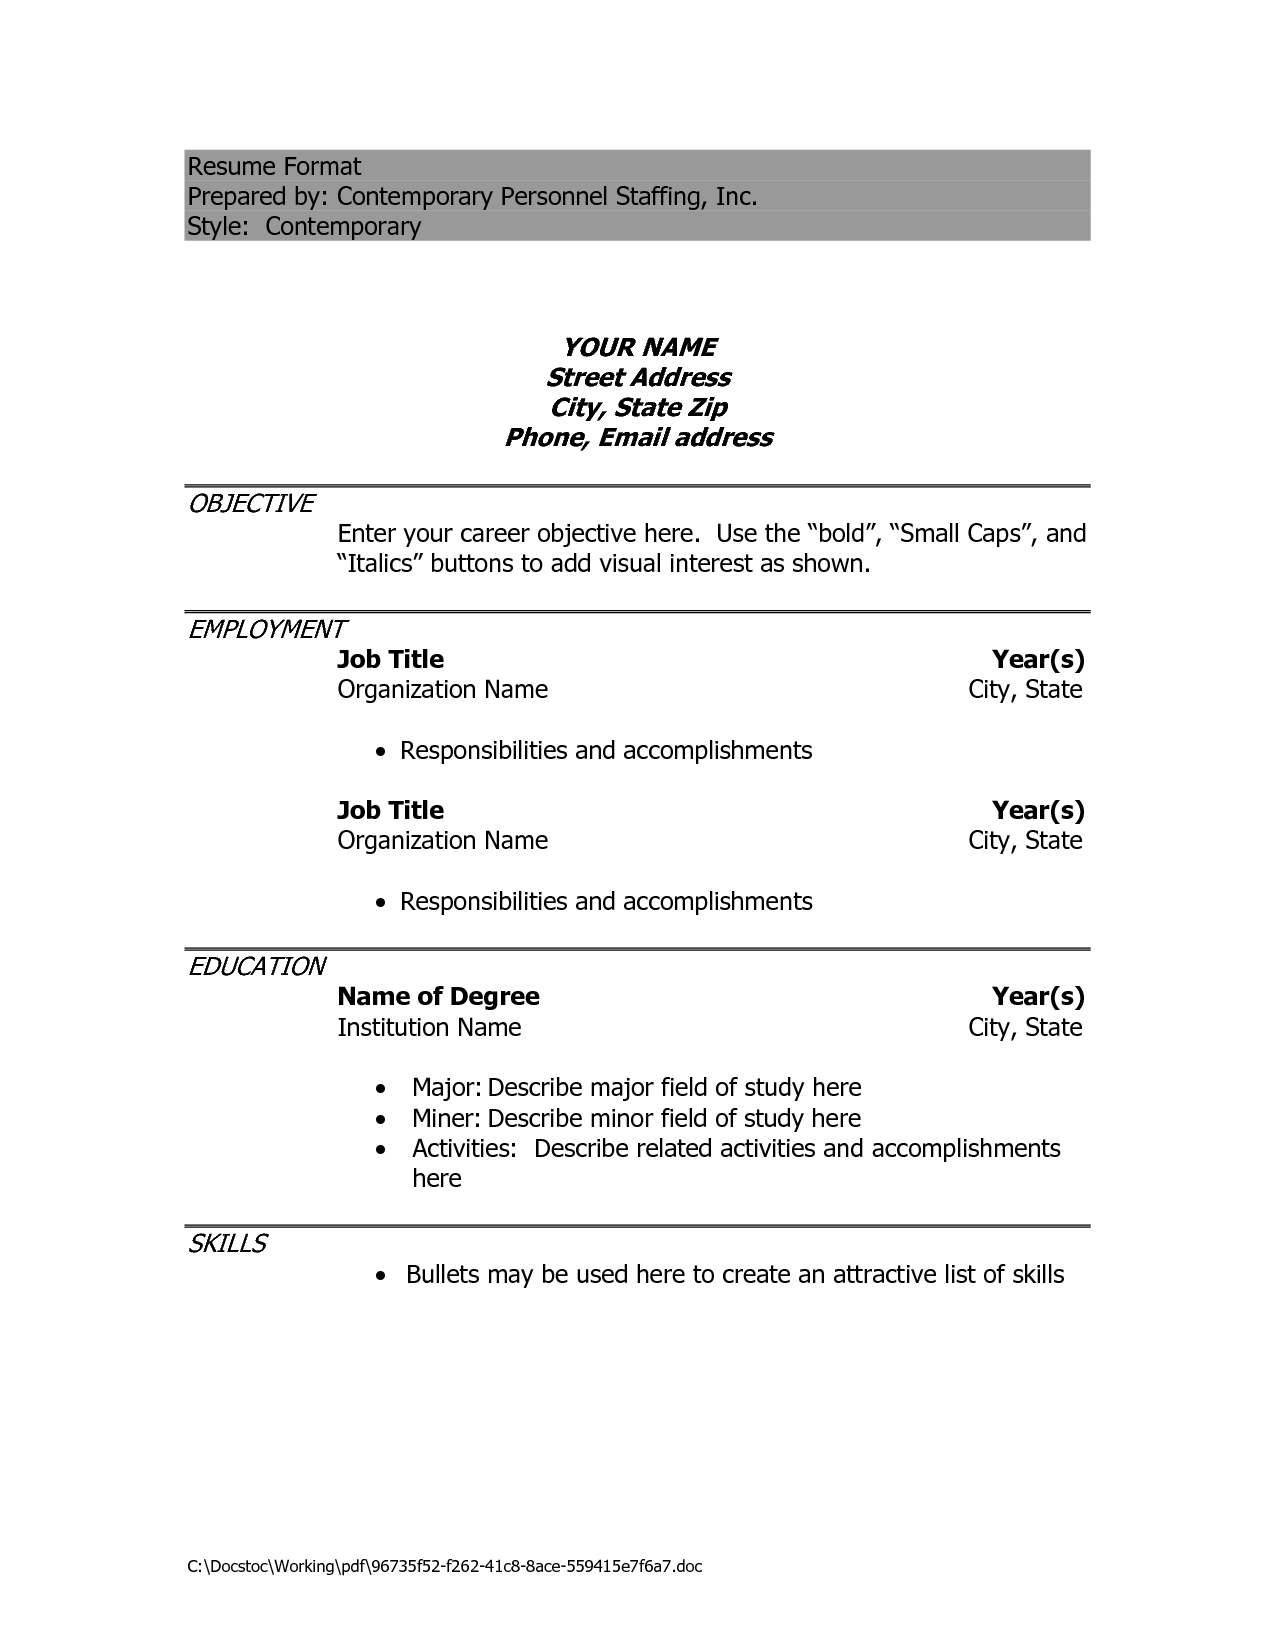 Sample Cover Letter Doc Resume Format For Teachers Doc File Resume Format For Teachers Doc